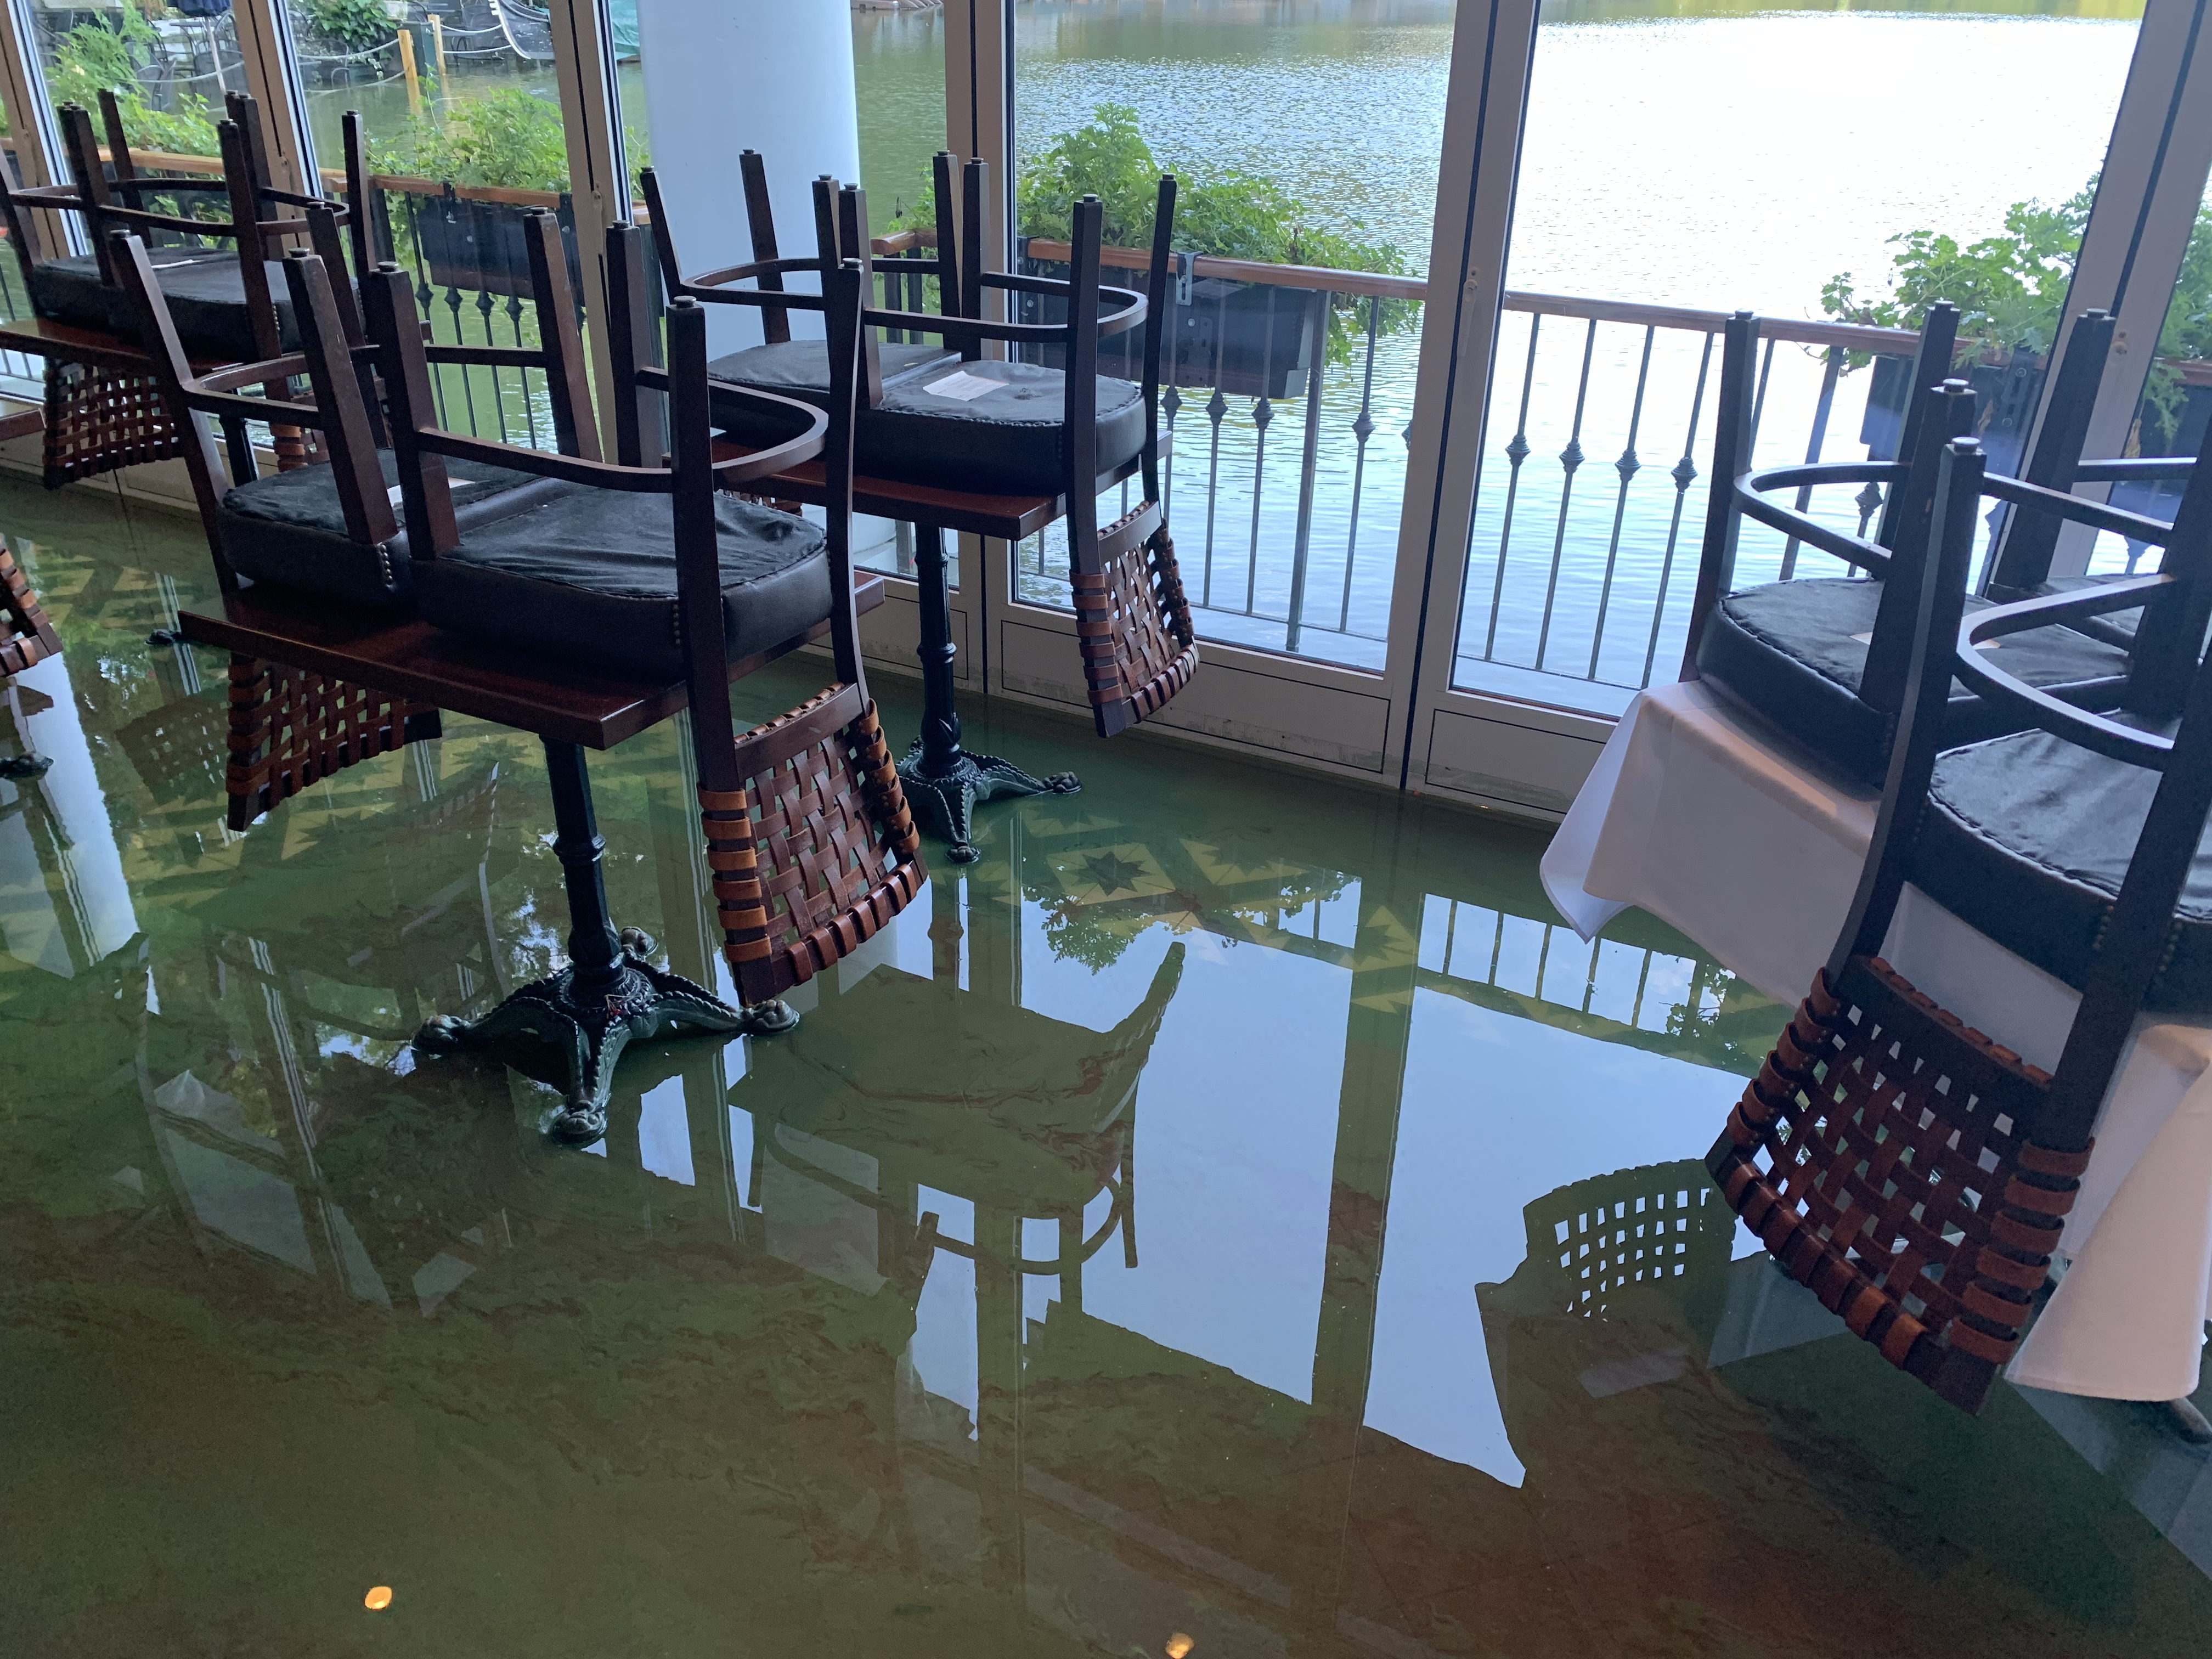 Water covers the floor of an open dining room with tables and chairs next to a lake